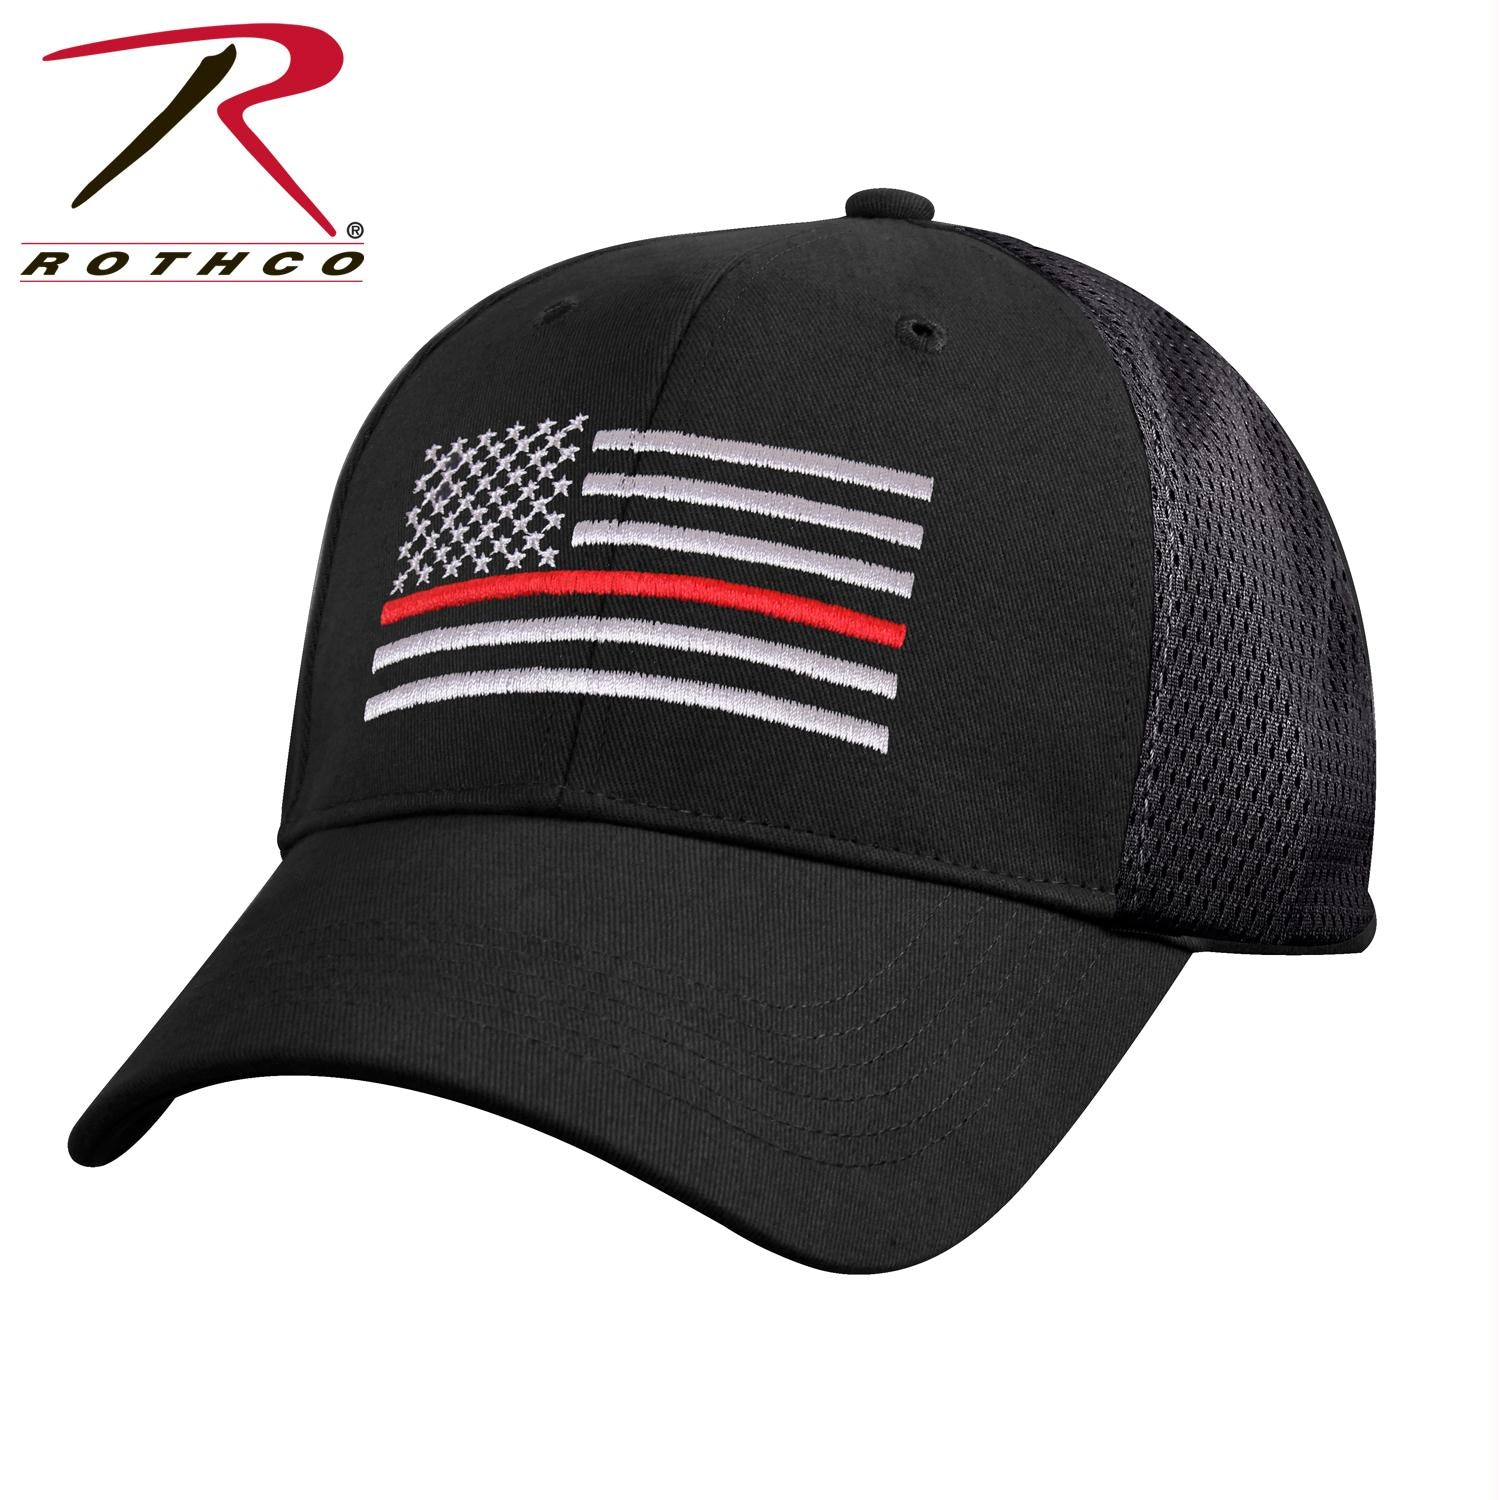 Rothco Mesh Back Thin Red Line Tactical Cap - Black / One Size